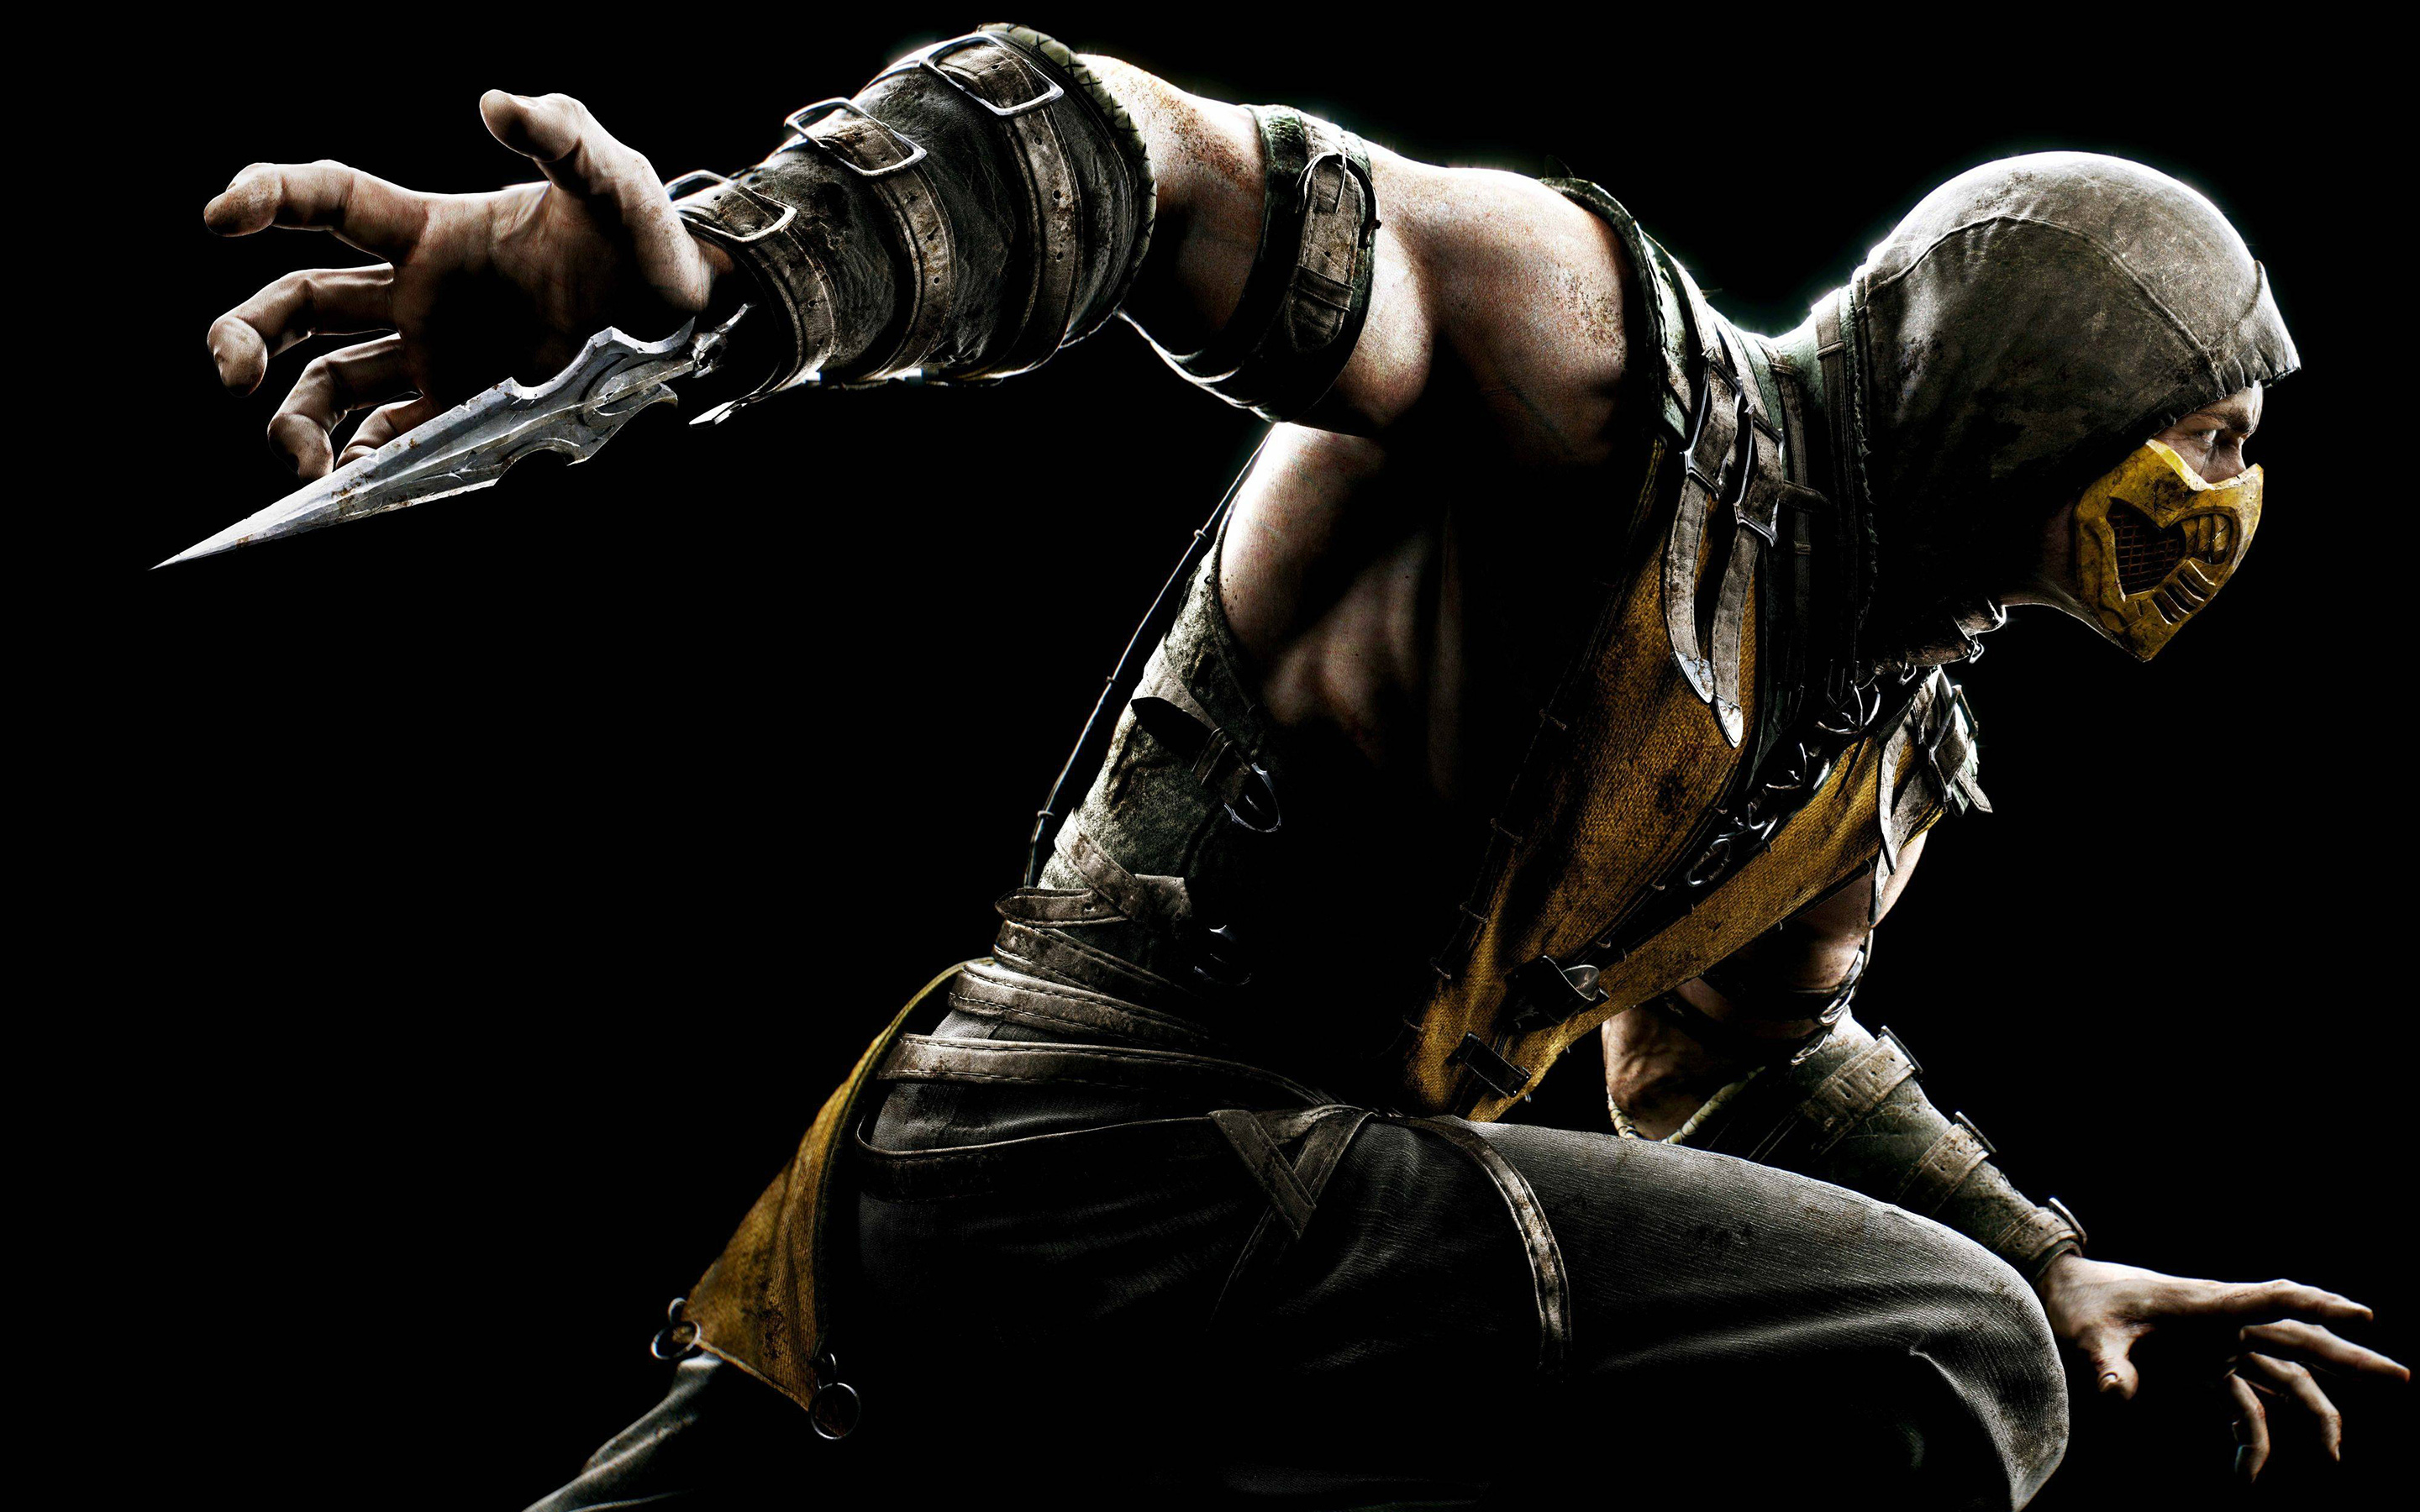 HD Wallpapers Mortal Kombat X Scorpion